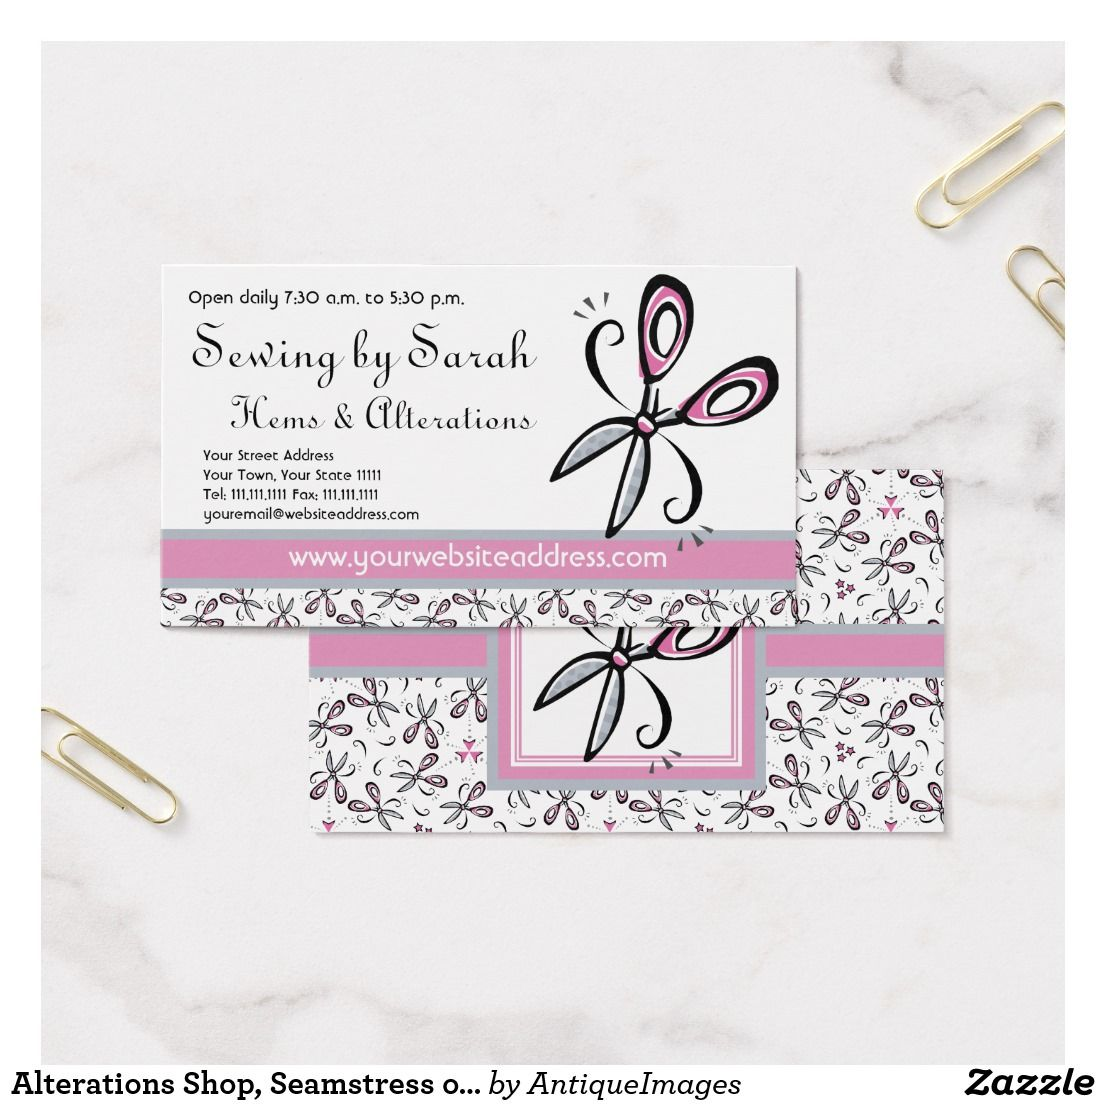 Alterations Shop, Seamstress or Tailor\'s Shop Business Card | What I ...